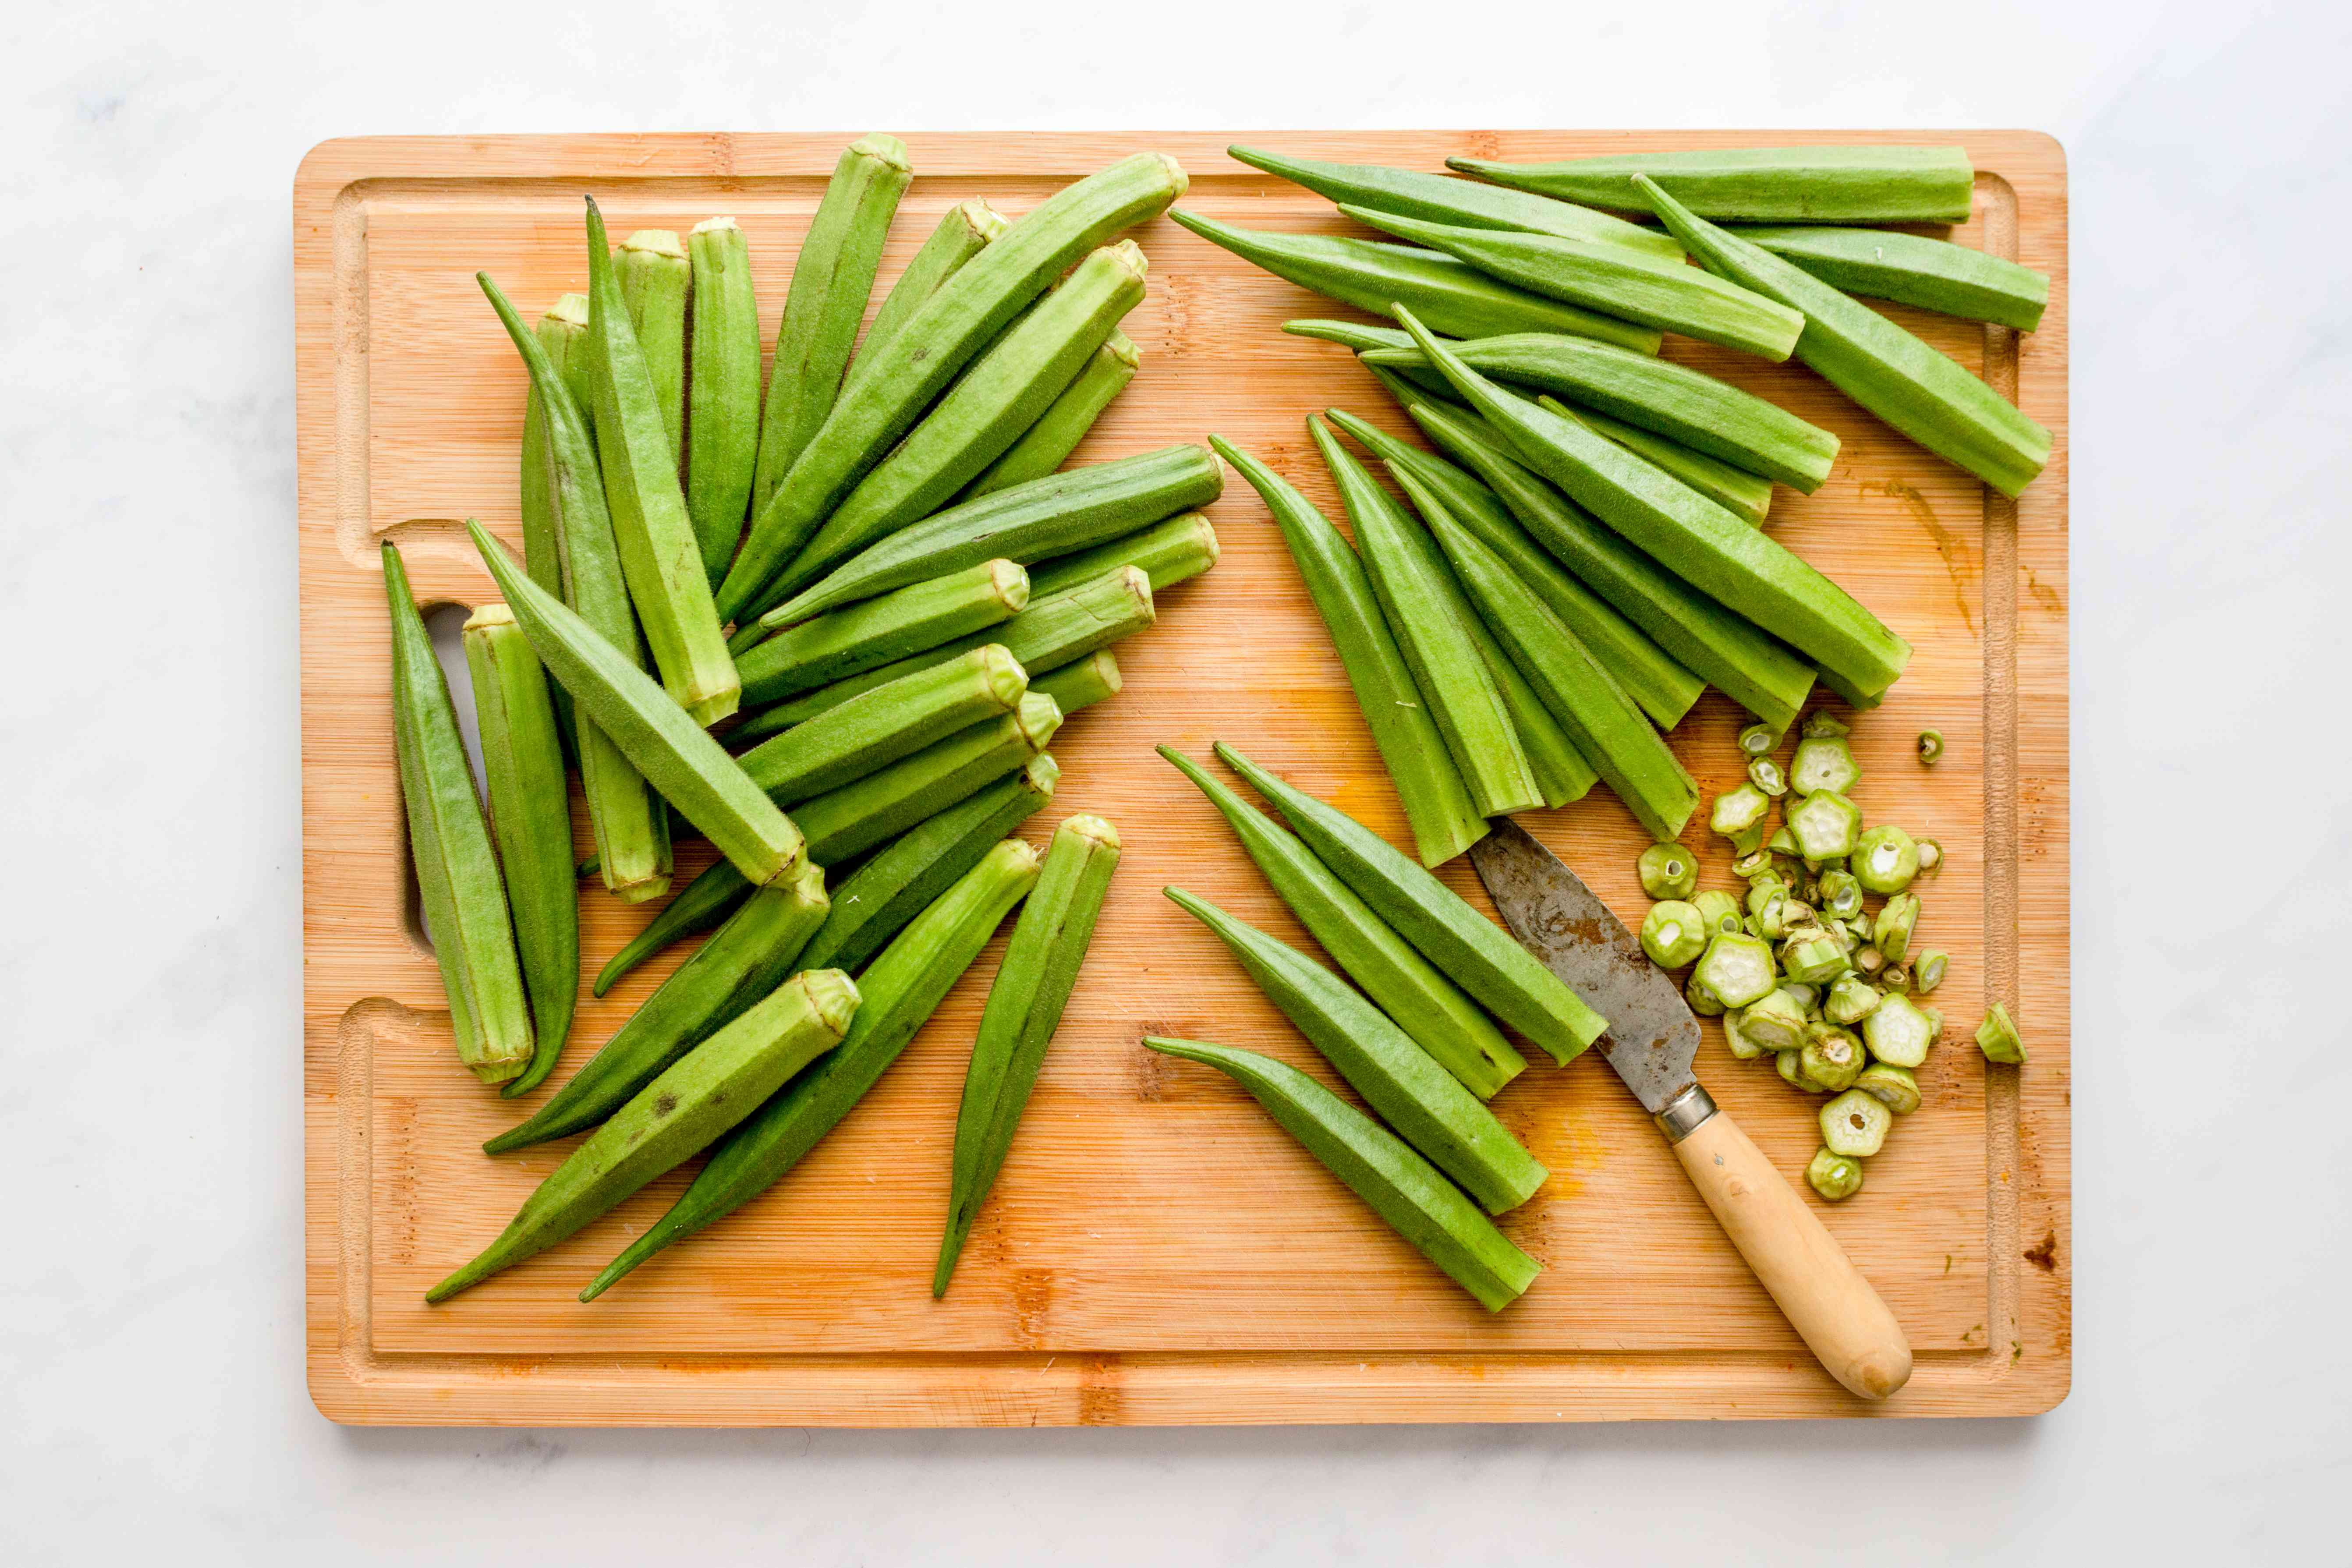 cleaned okra with the ends cut off